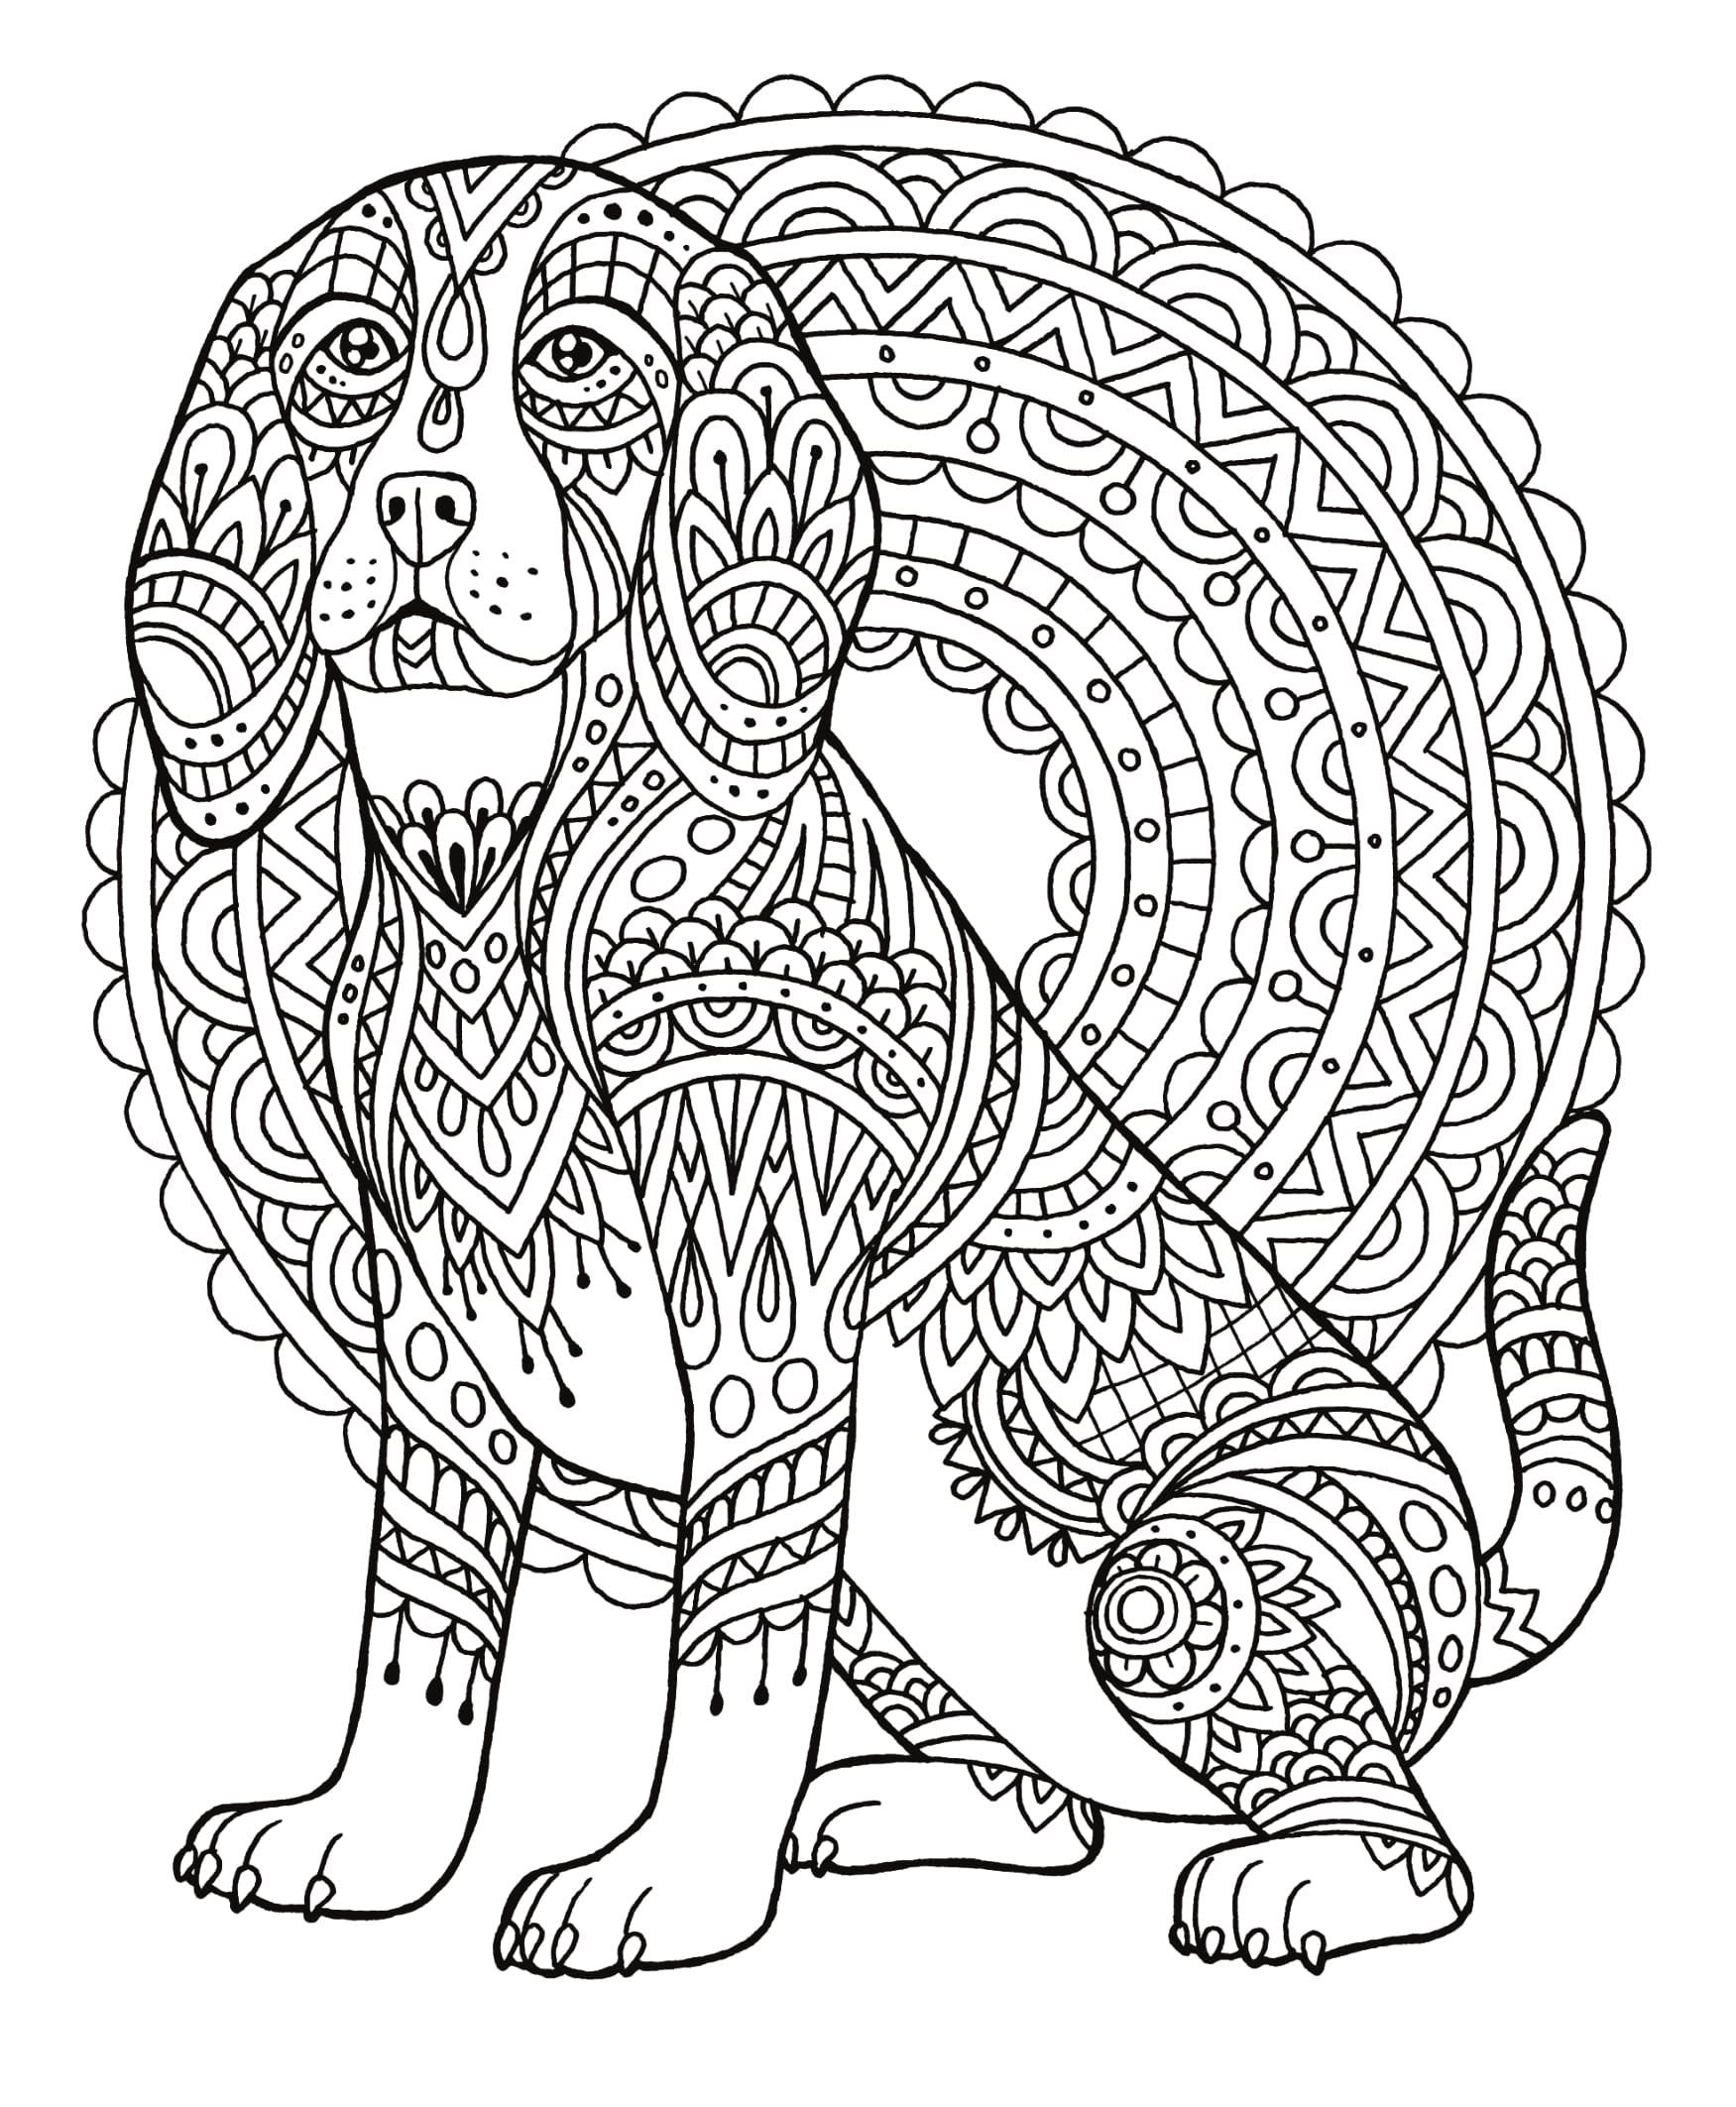 Dog Coloring Book For Adults By Colorit Colorit Hasby Mubarok 9780998225944 Amazon Com Books Dog Coloring Book Dog Coloring Page Horse Coloring Pages [ 2125 x 1751 Pixel ]